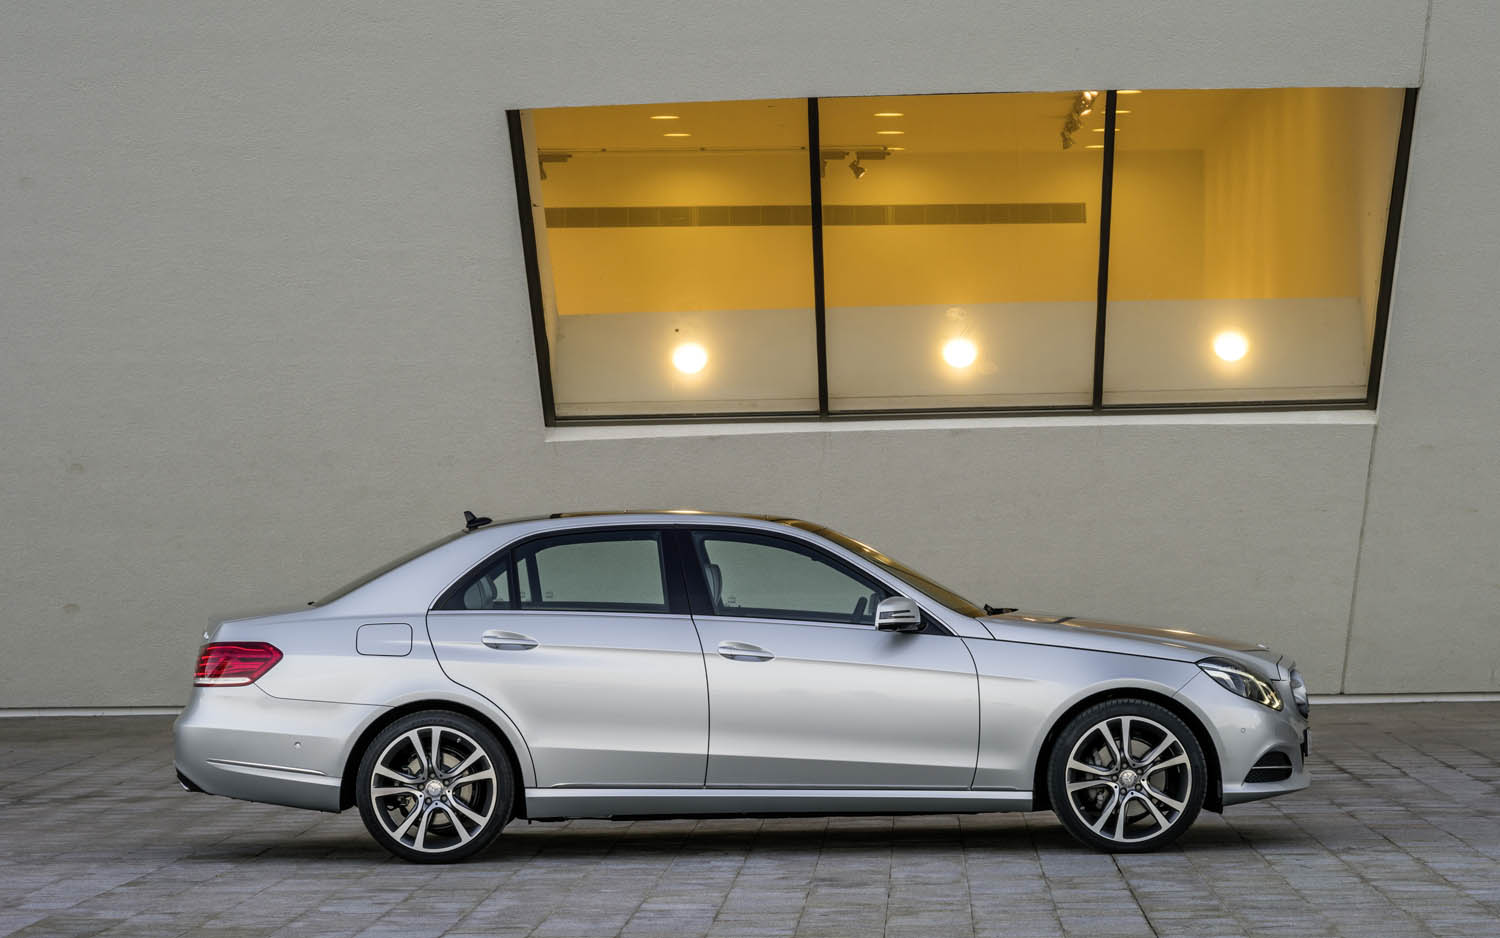 Mercedes benz clase e sed n 2014 m s agresivo y con for 2014 mercedes benz e class e250 bluetec sedan review